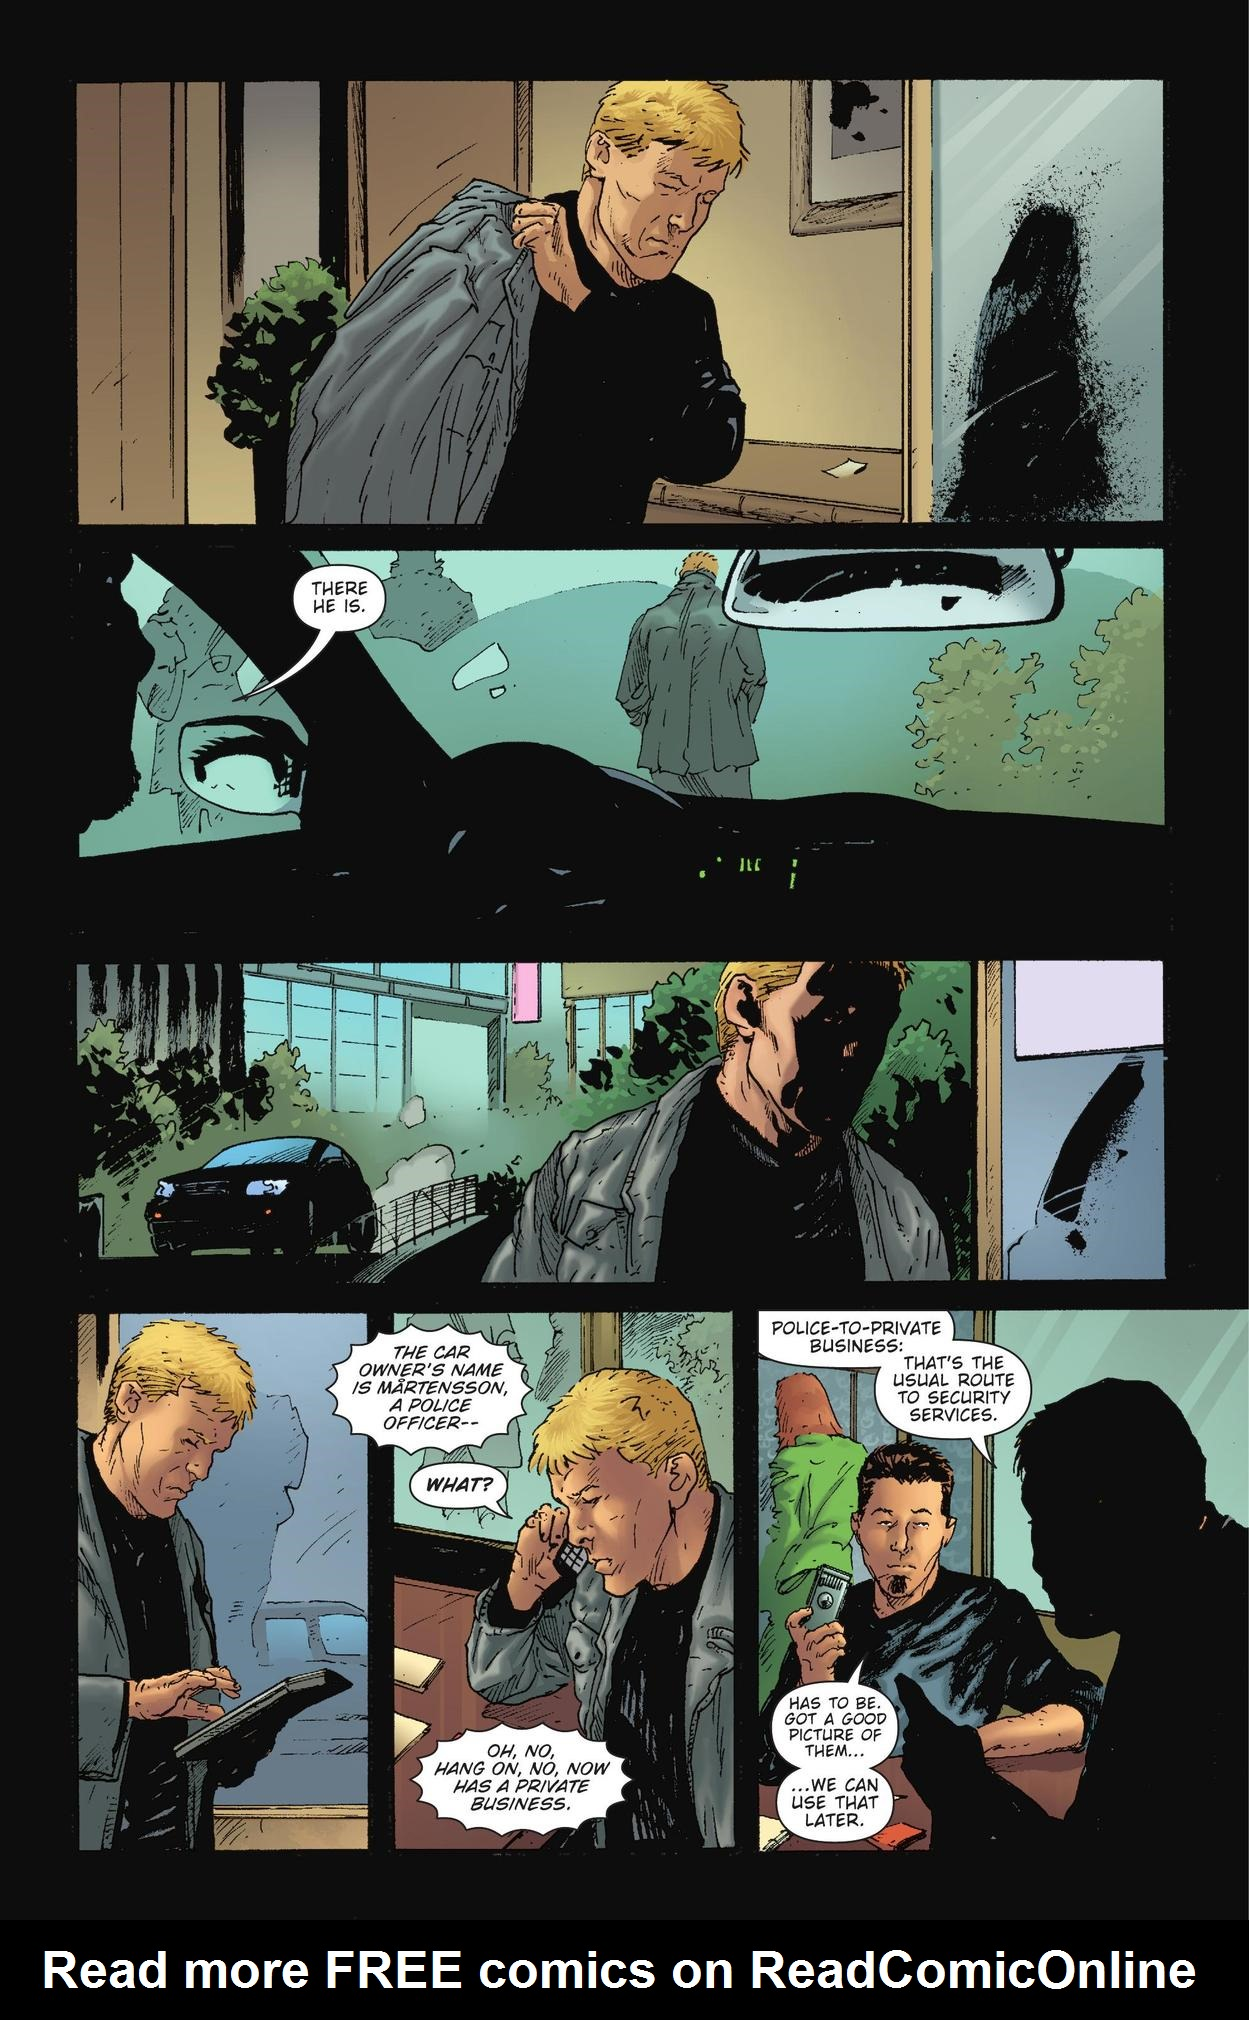 Read online The Girl Who Kicked The Hornet's Nest comic -  Issue # TPB - 123